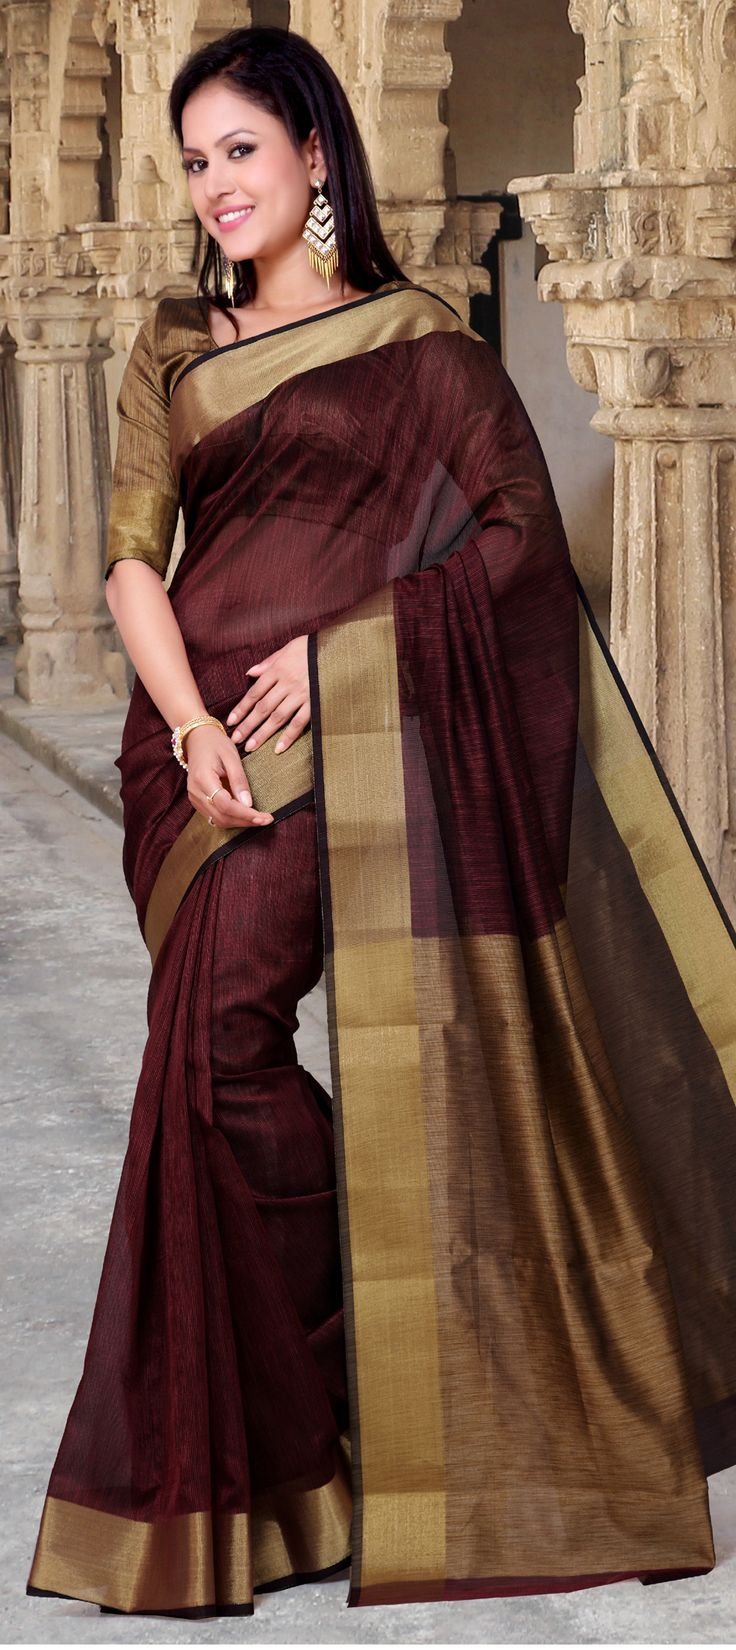 168204: Red and Maroon color family Silk Sarees with matching unstitched blouse.